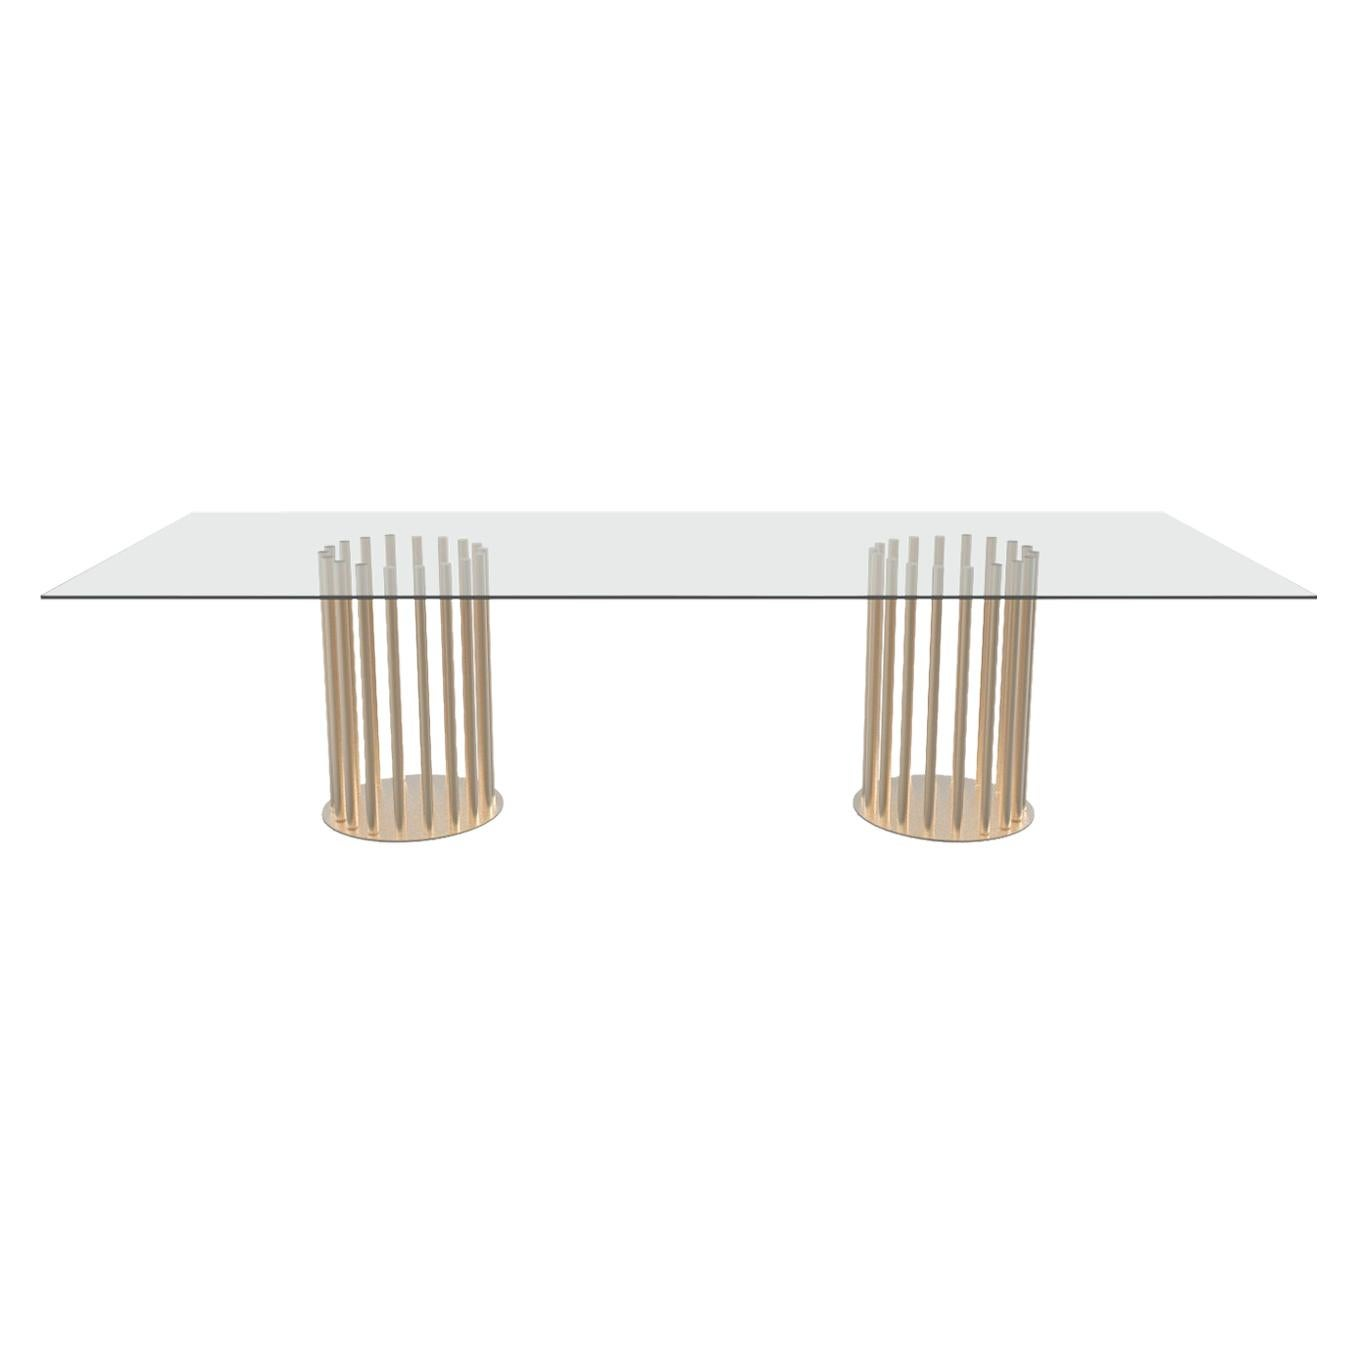 Ela Rectangular Luxury Table, Metal Round Base and Glass Top, Made in Italy